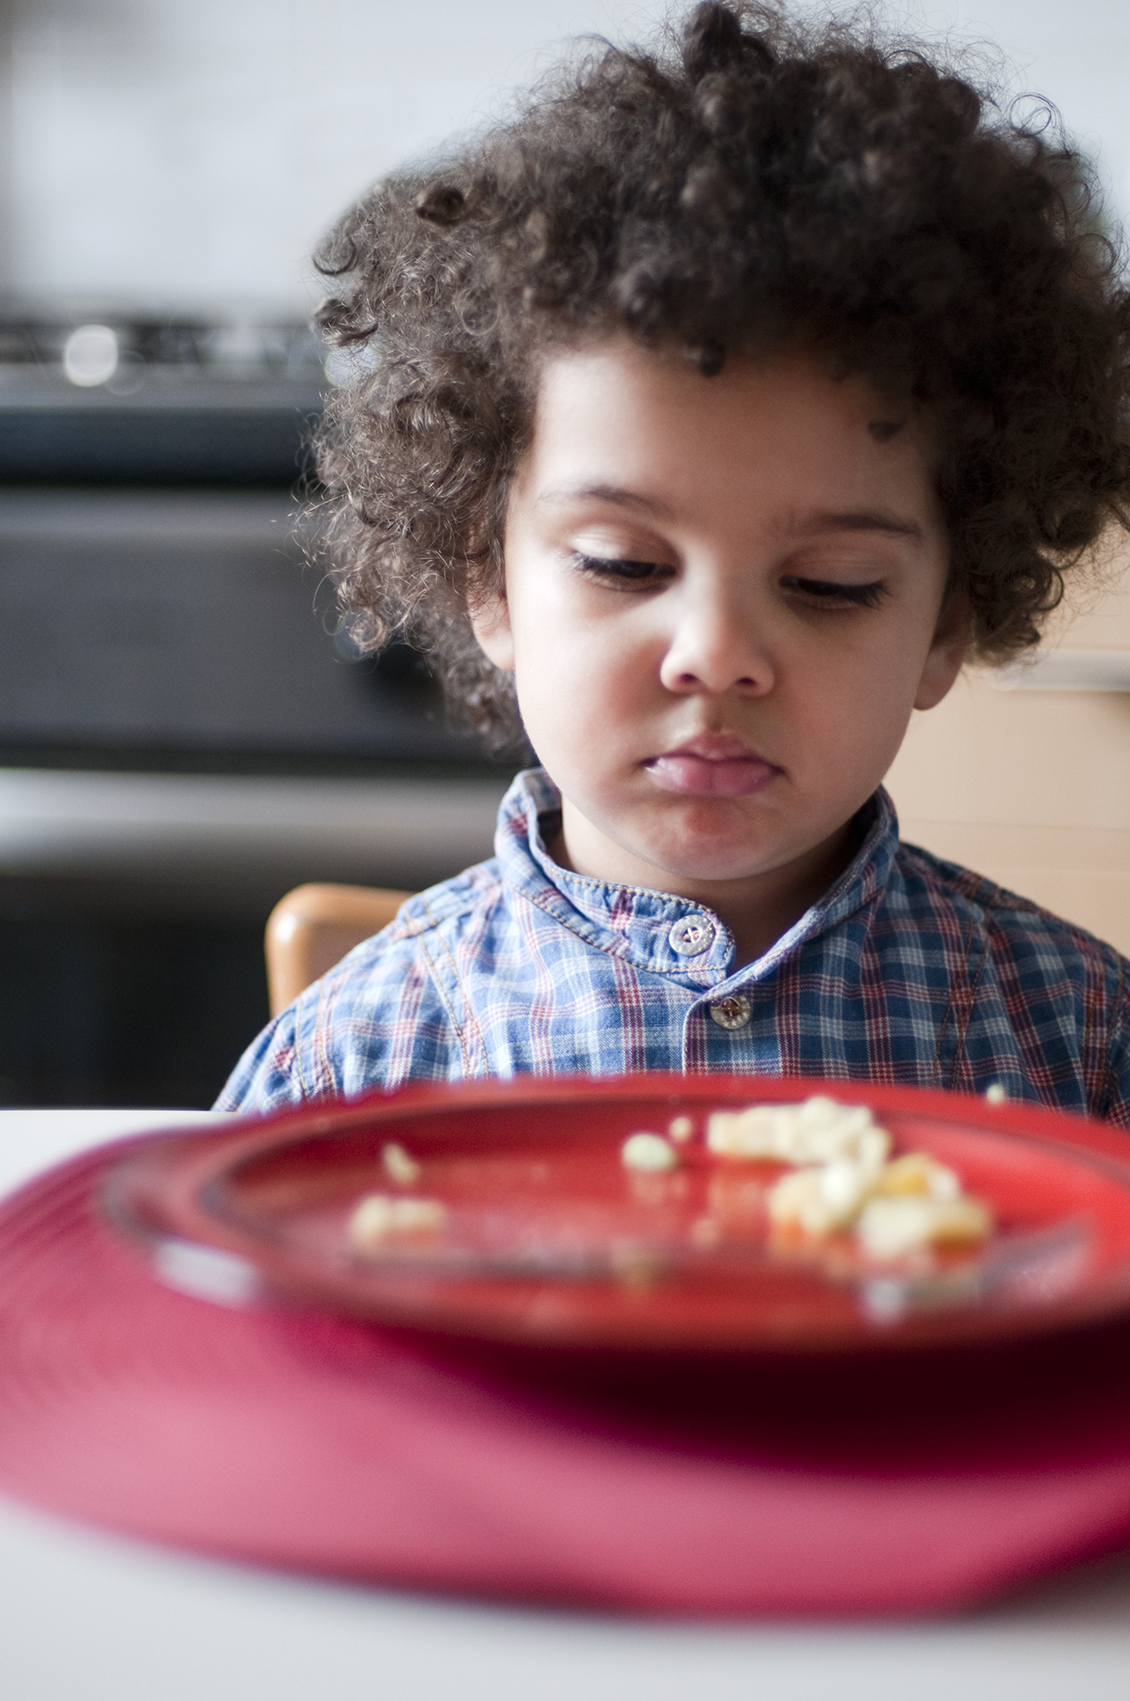 Unhappy Child at Meal Time